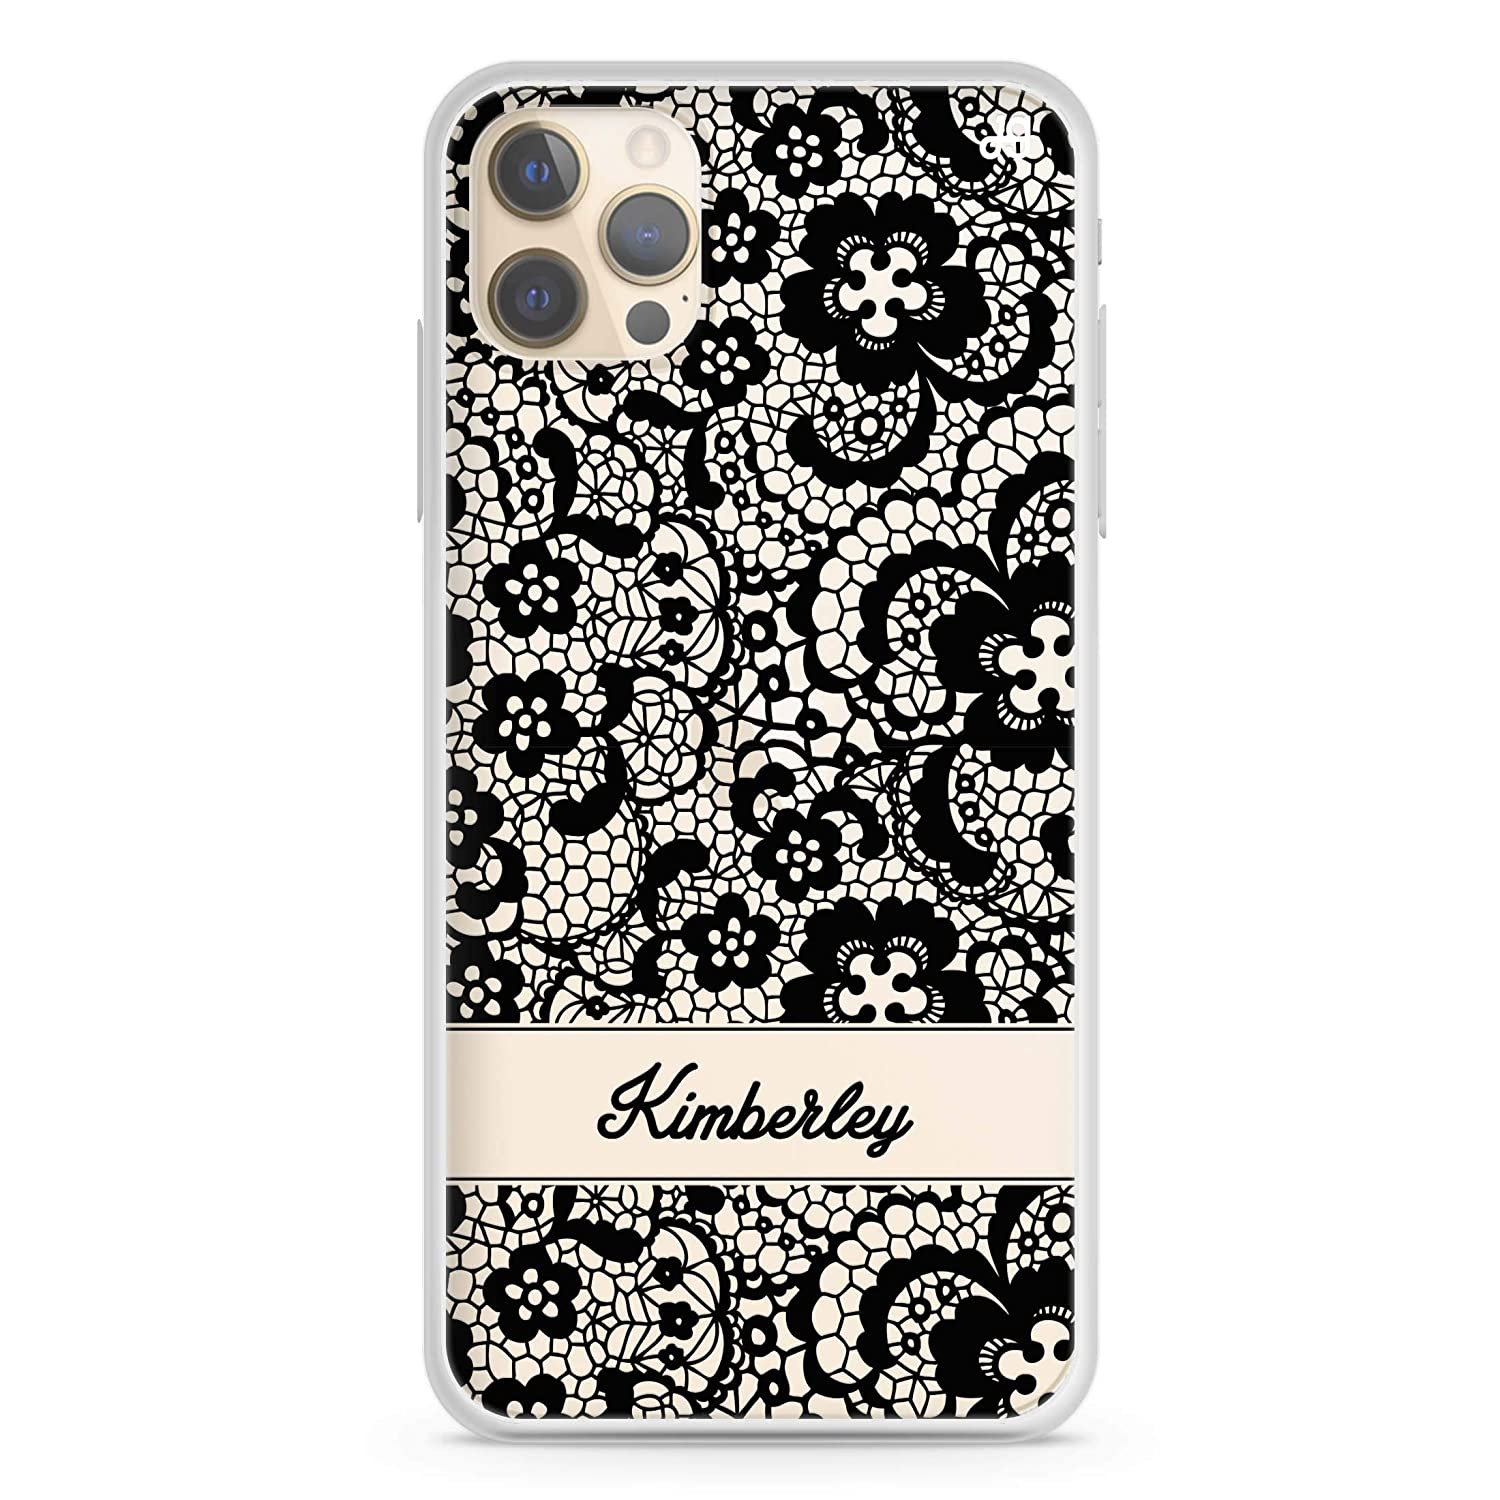 My Lace iPhone 12 Pro Clear Max Case Soft Year-end gift San Diego Mall